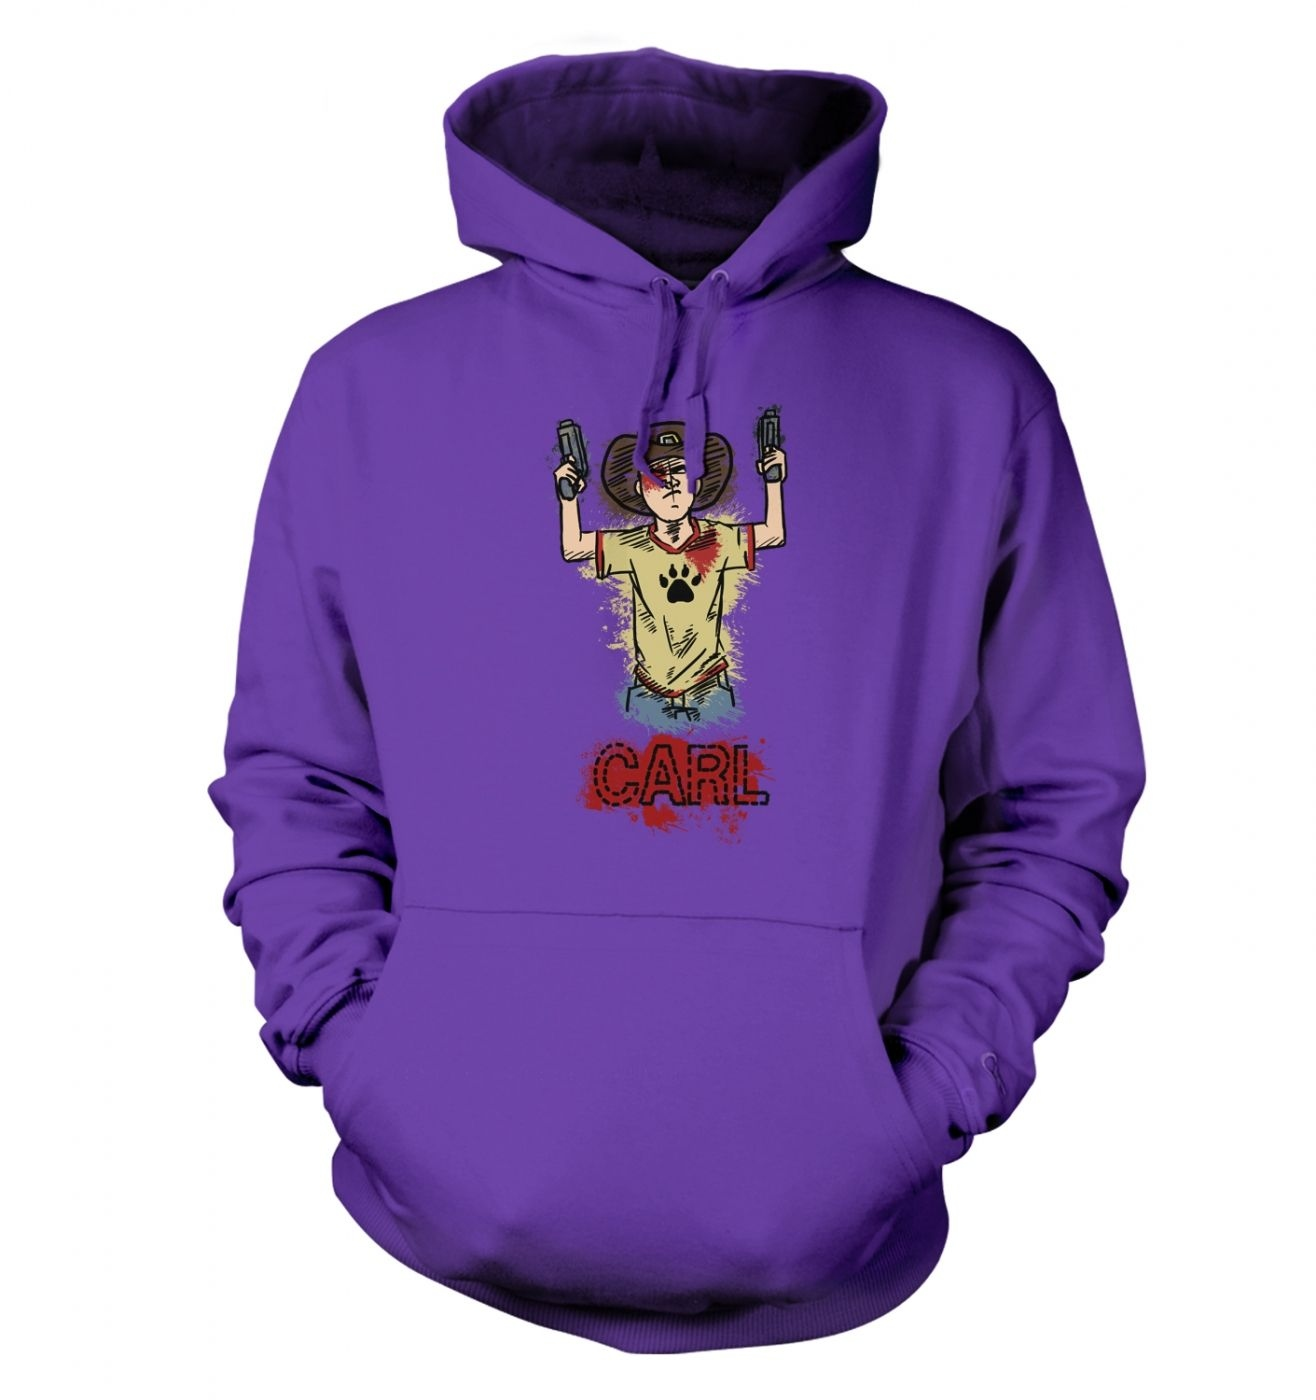 Kid With Guns hoodie